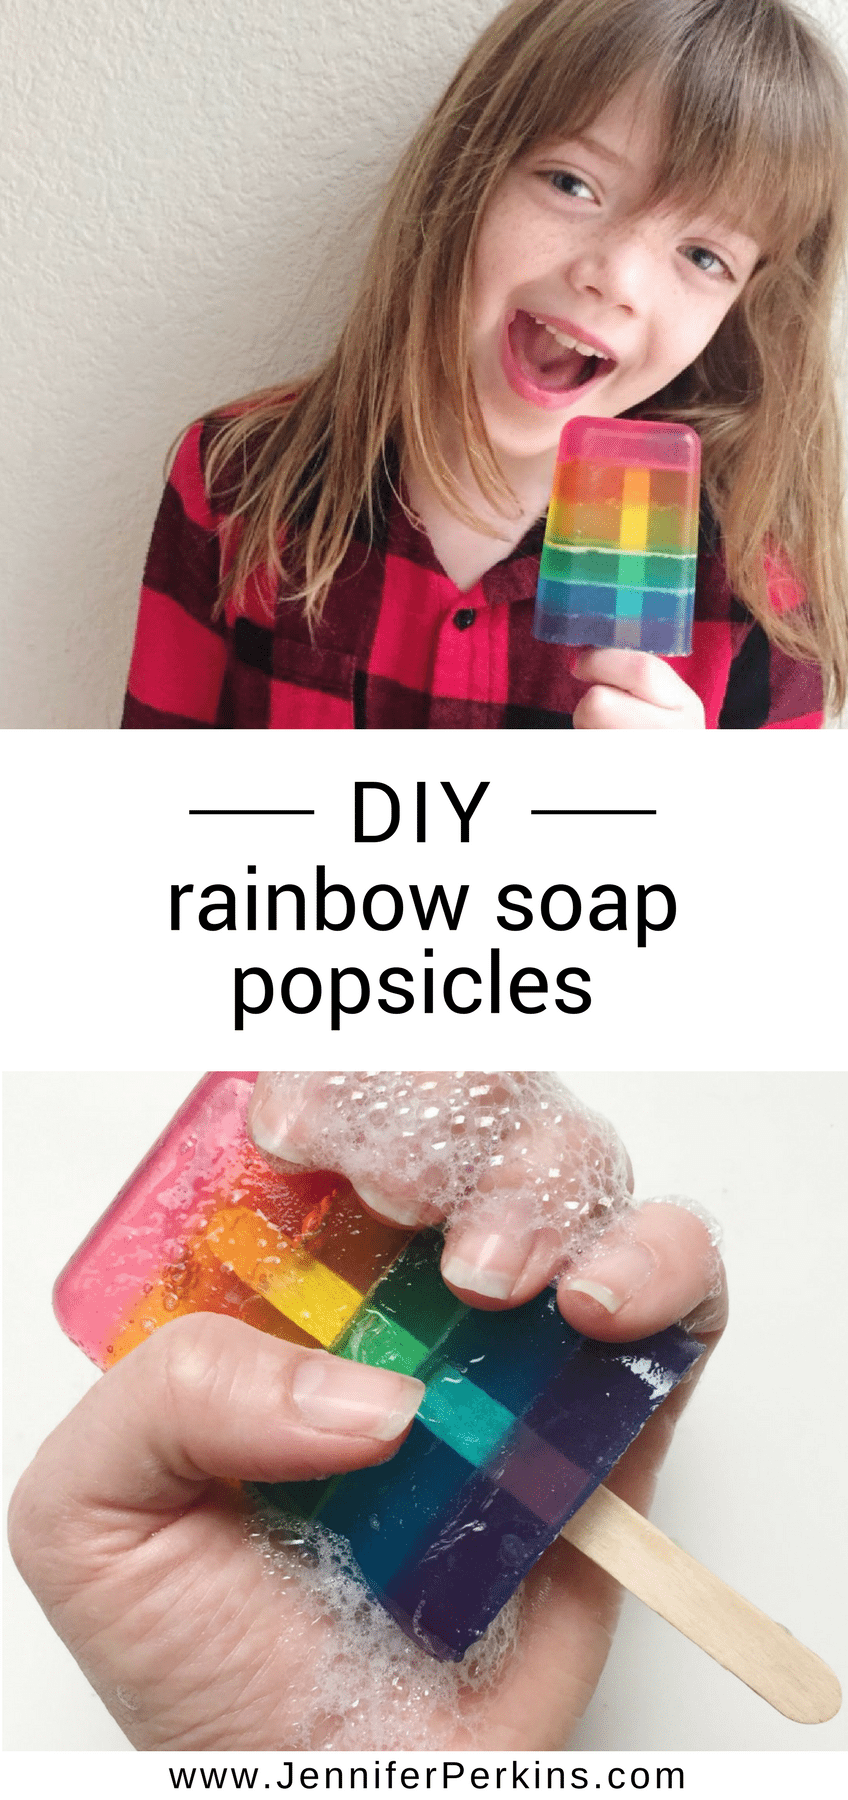 DIY Rainbow Soap Popsicles by Jennifer Perkins